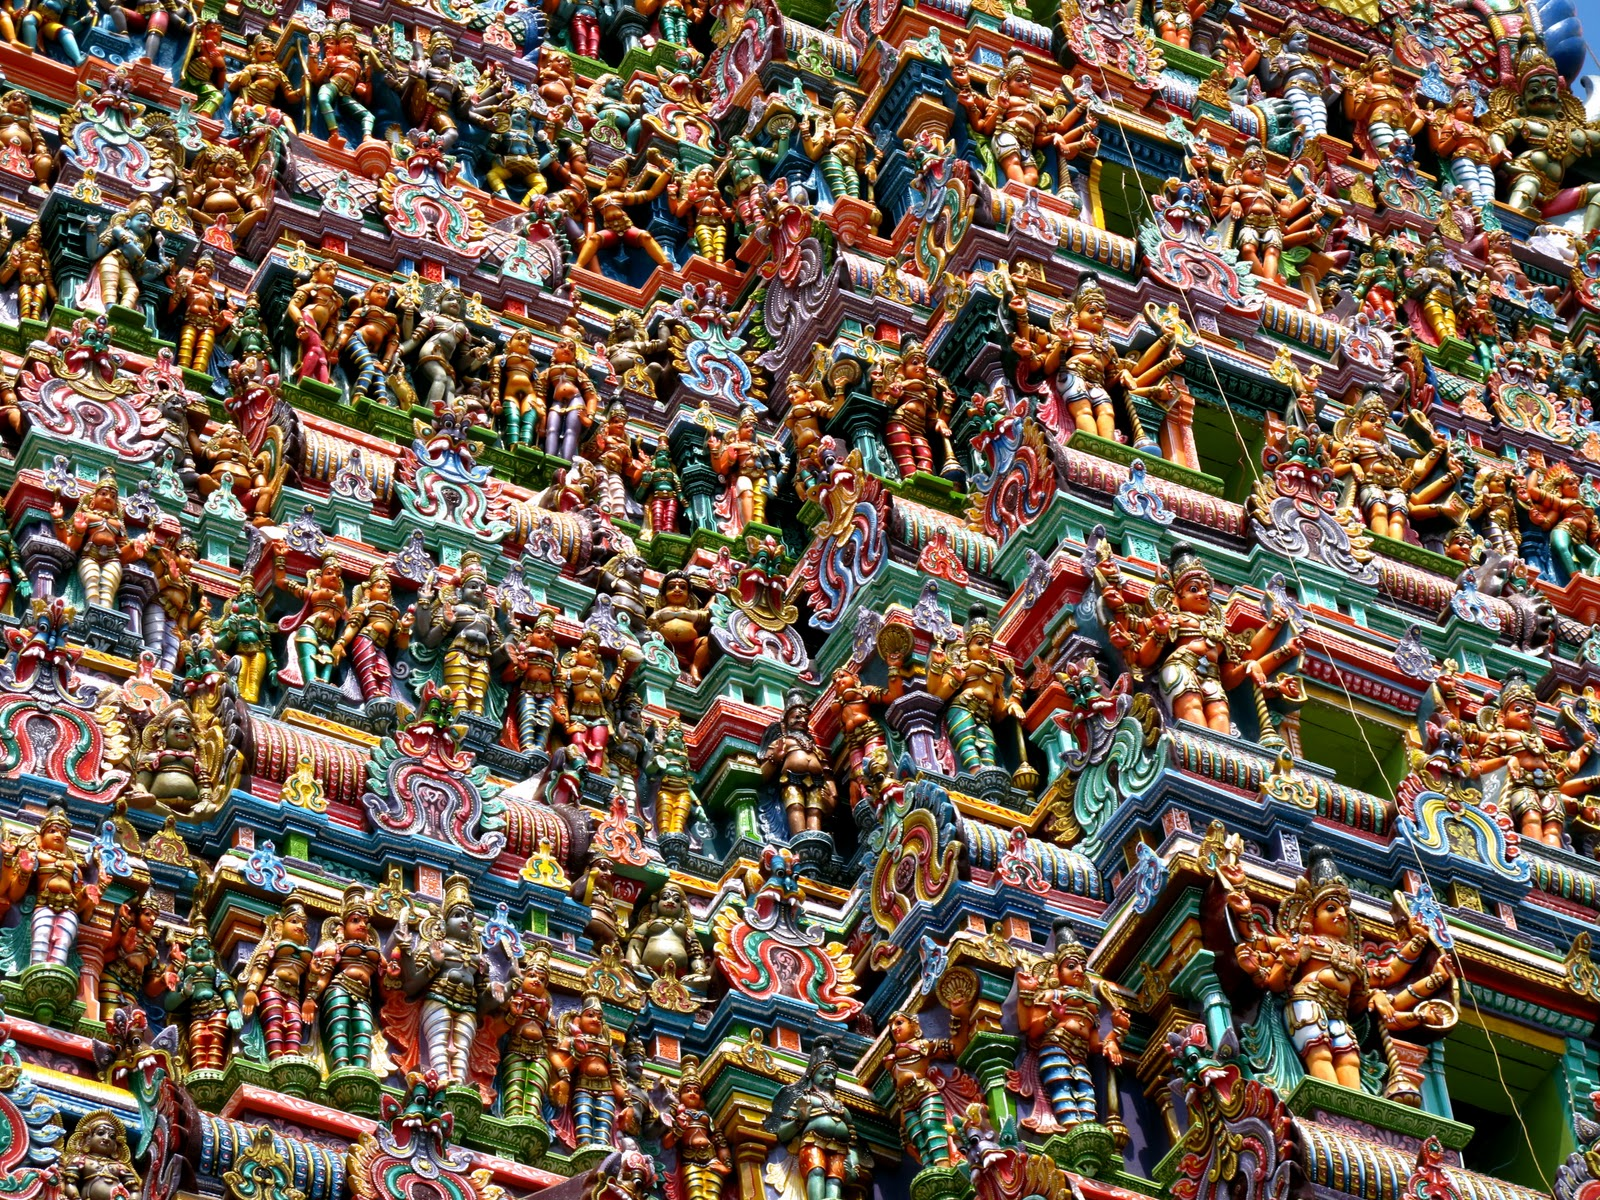 Ruling Deity Of Madurai The Great Meenakshi Amman